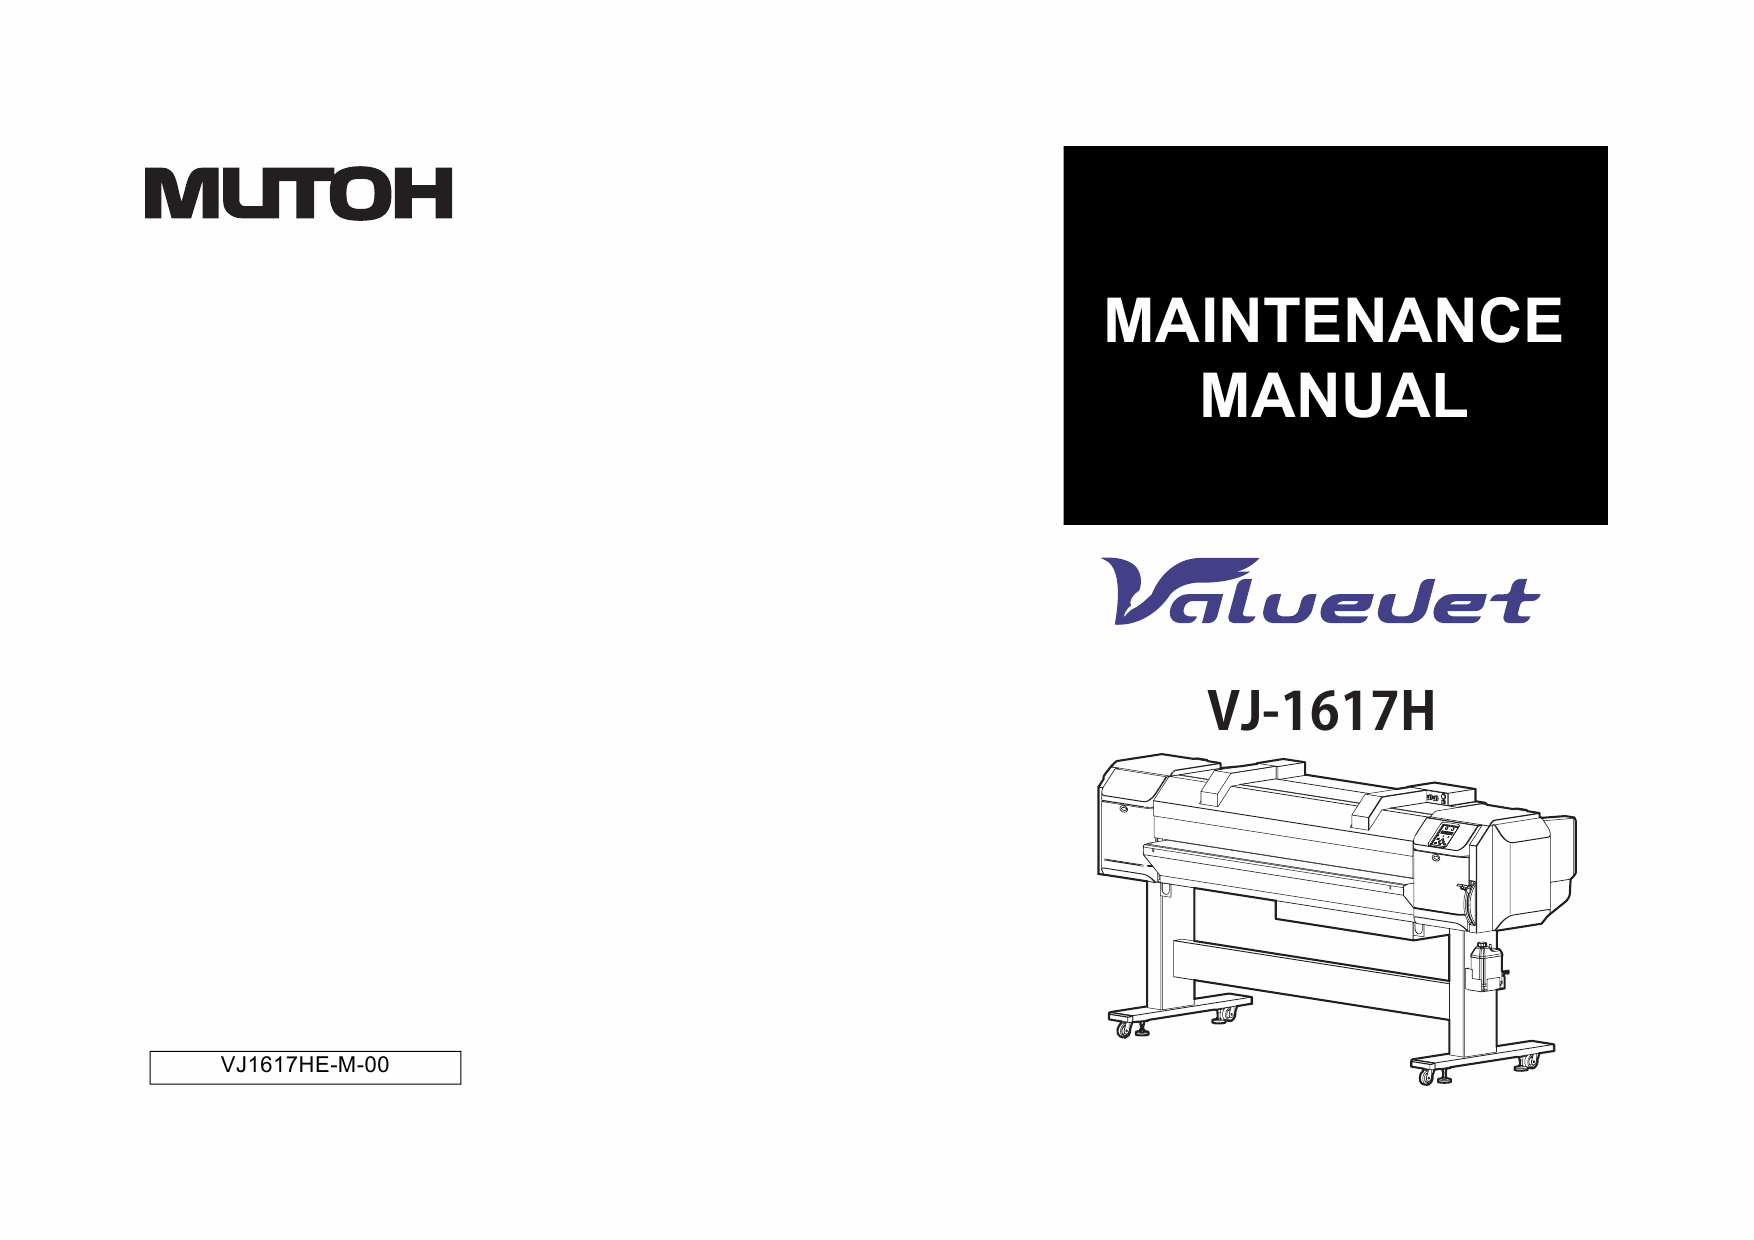 MUTOH ValueJet VJ 1617H MAINTENANCE Service and Parts Manual-1